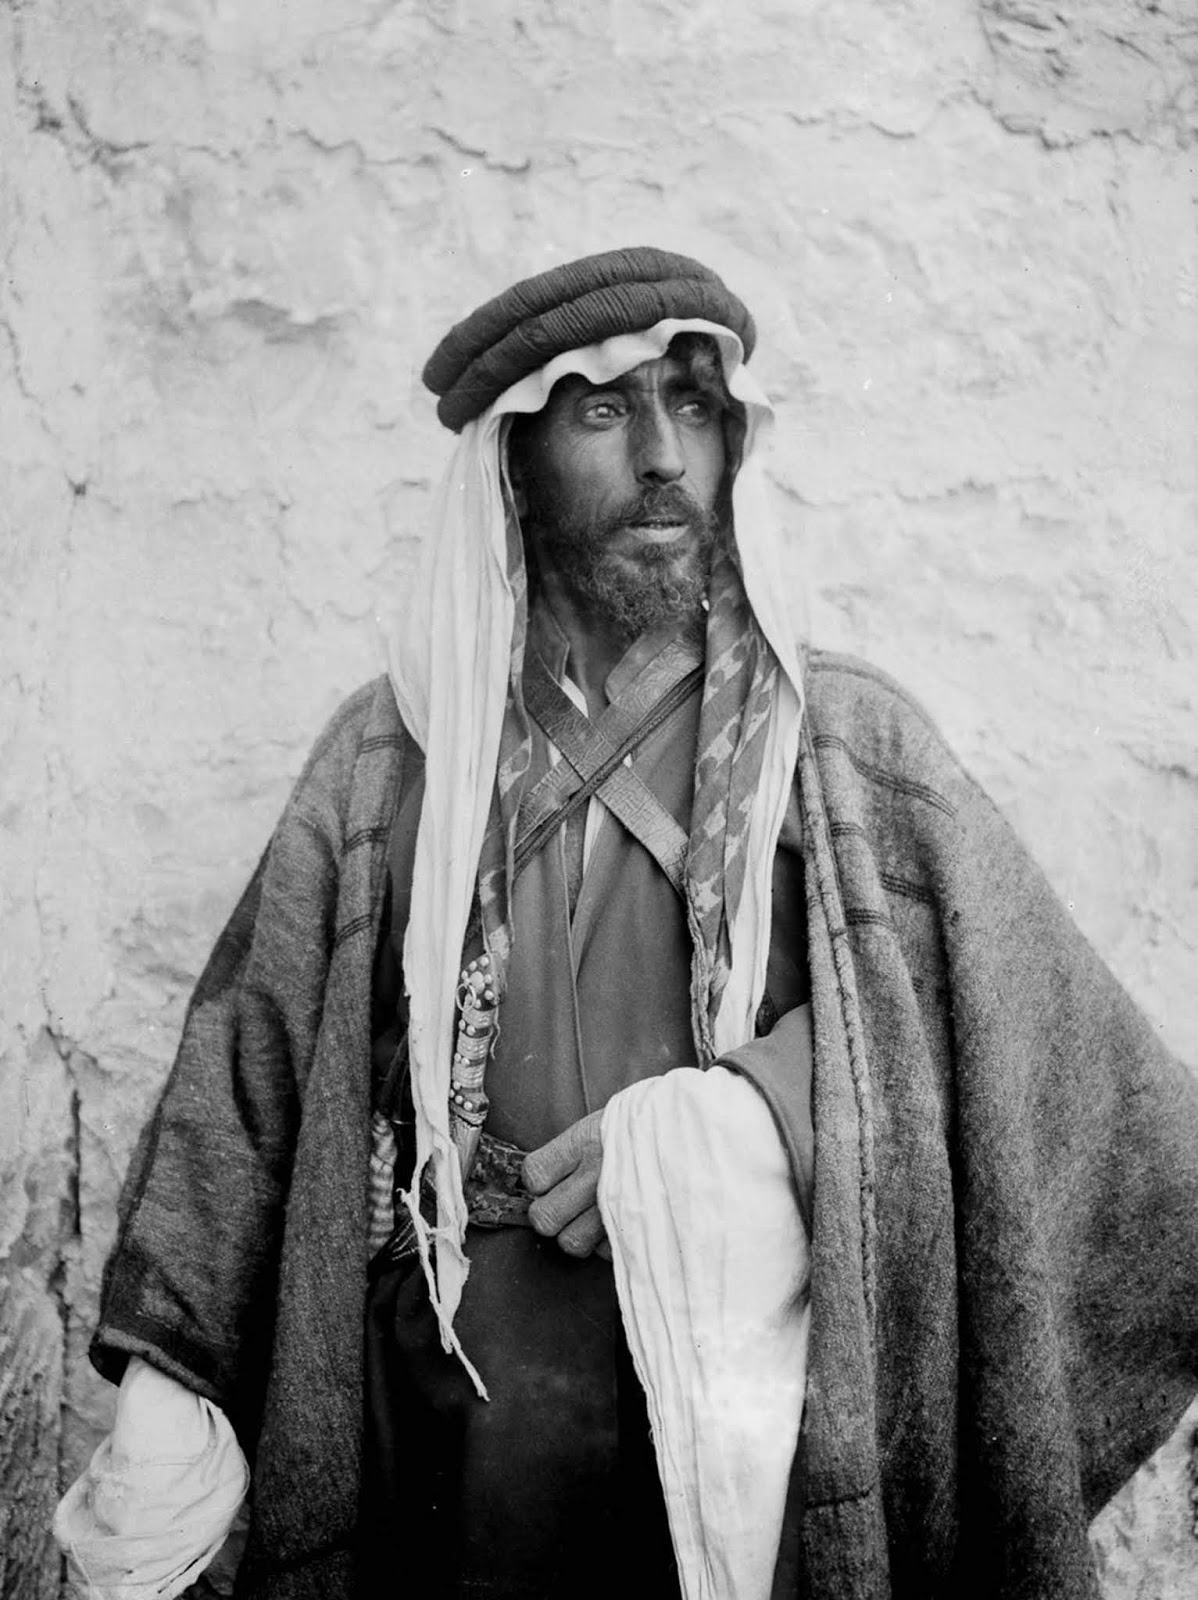 The traditional Bedouin